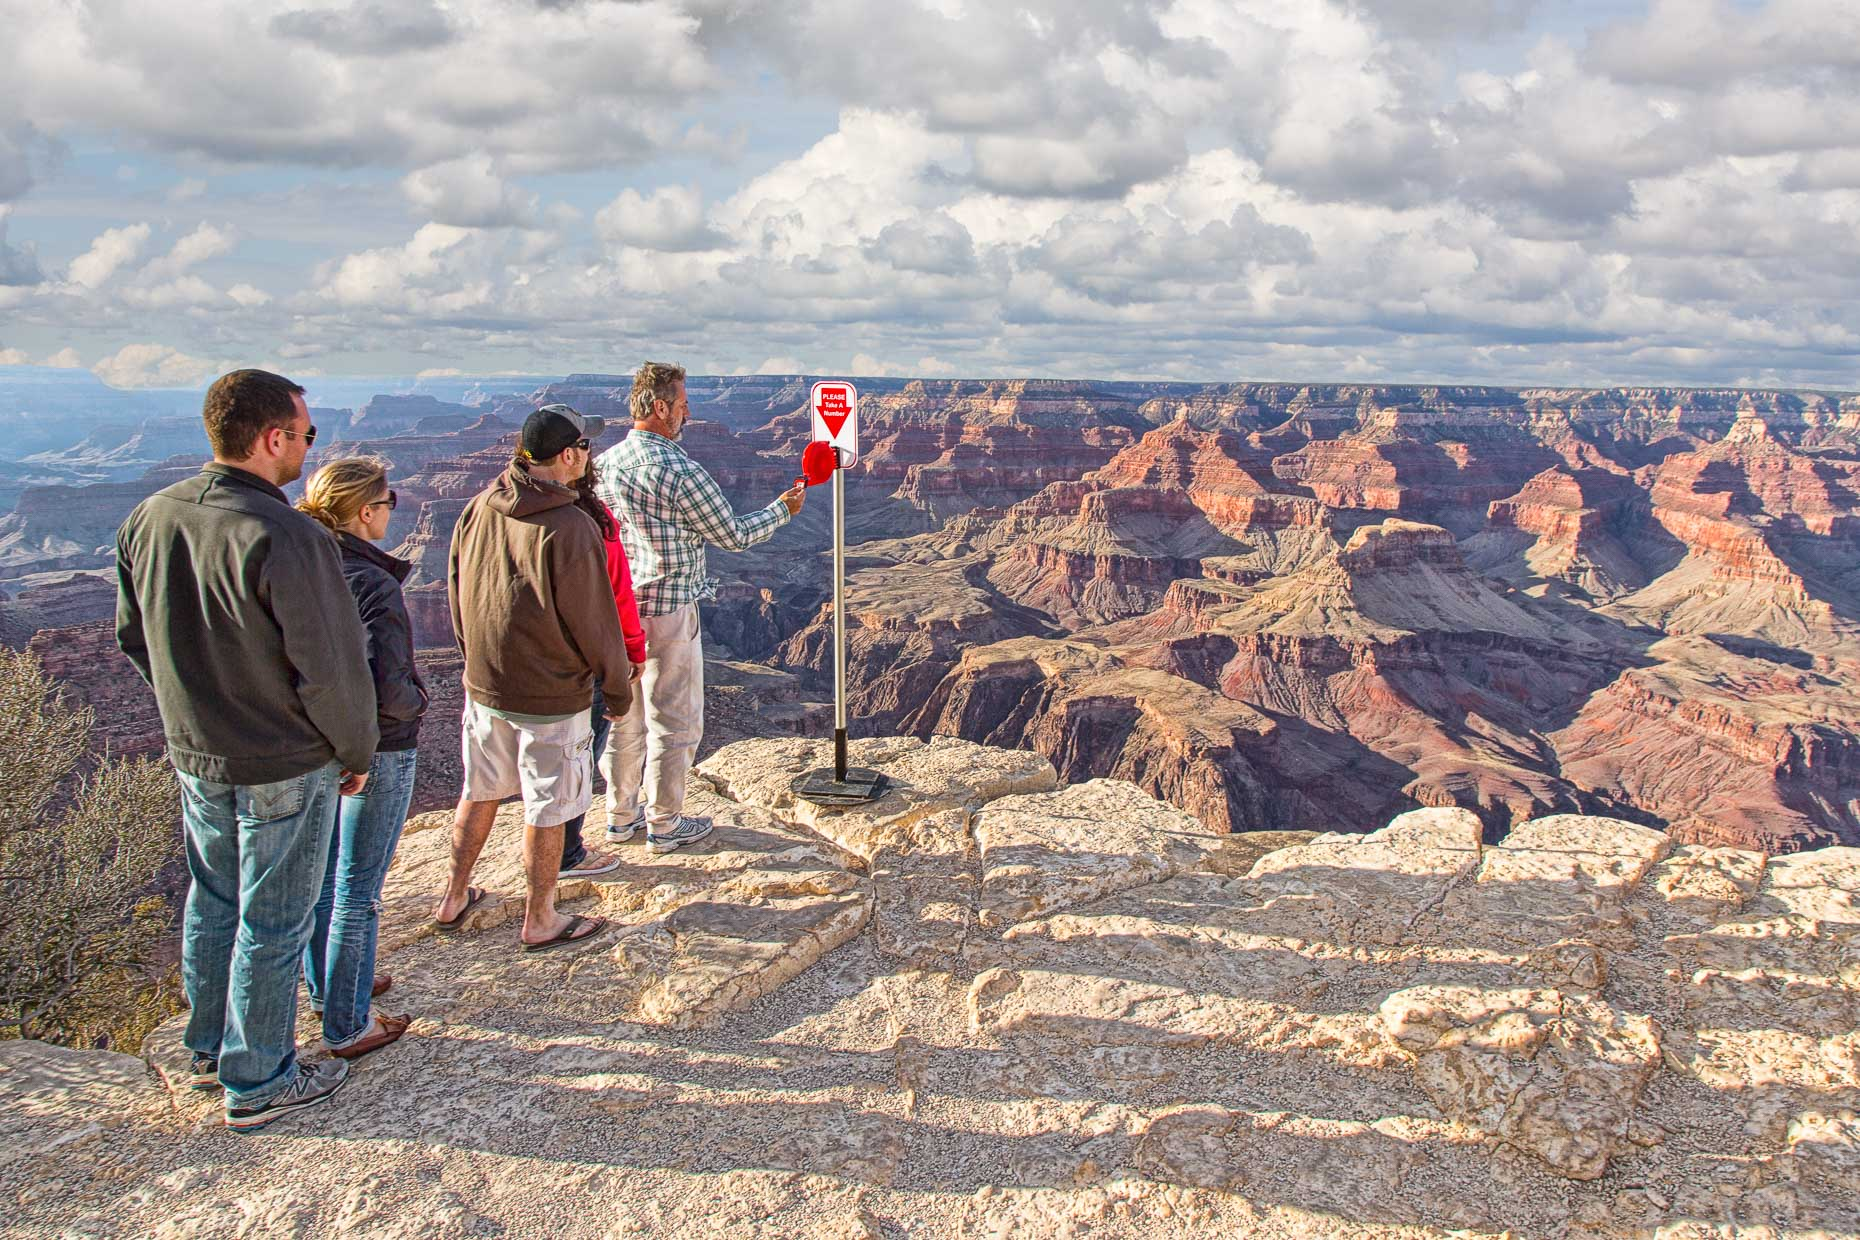 People stand in line to take a number from dispenser at edge of Grand Canyon by David Zaitz